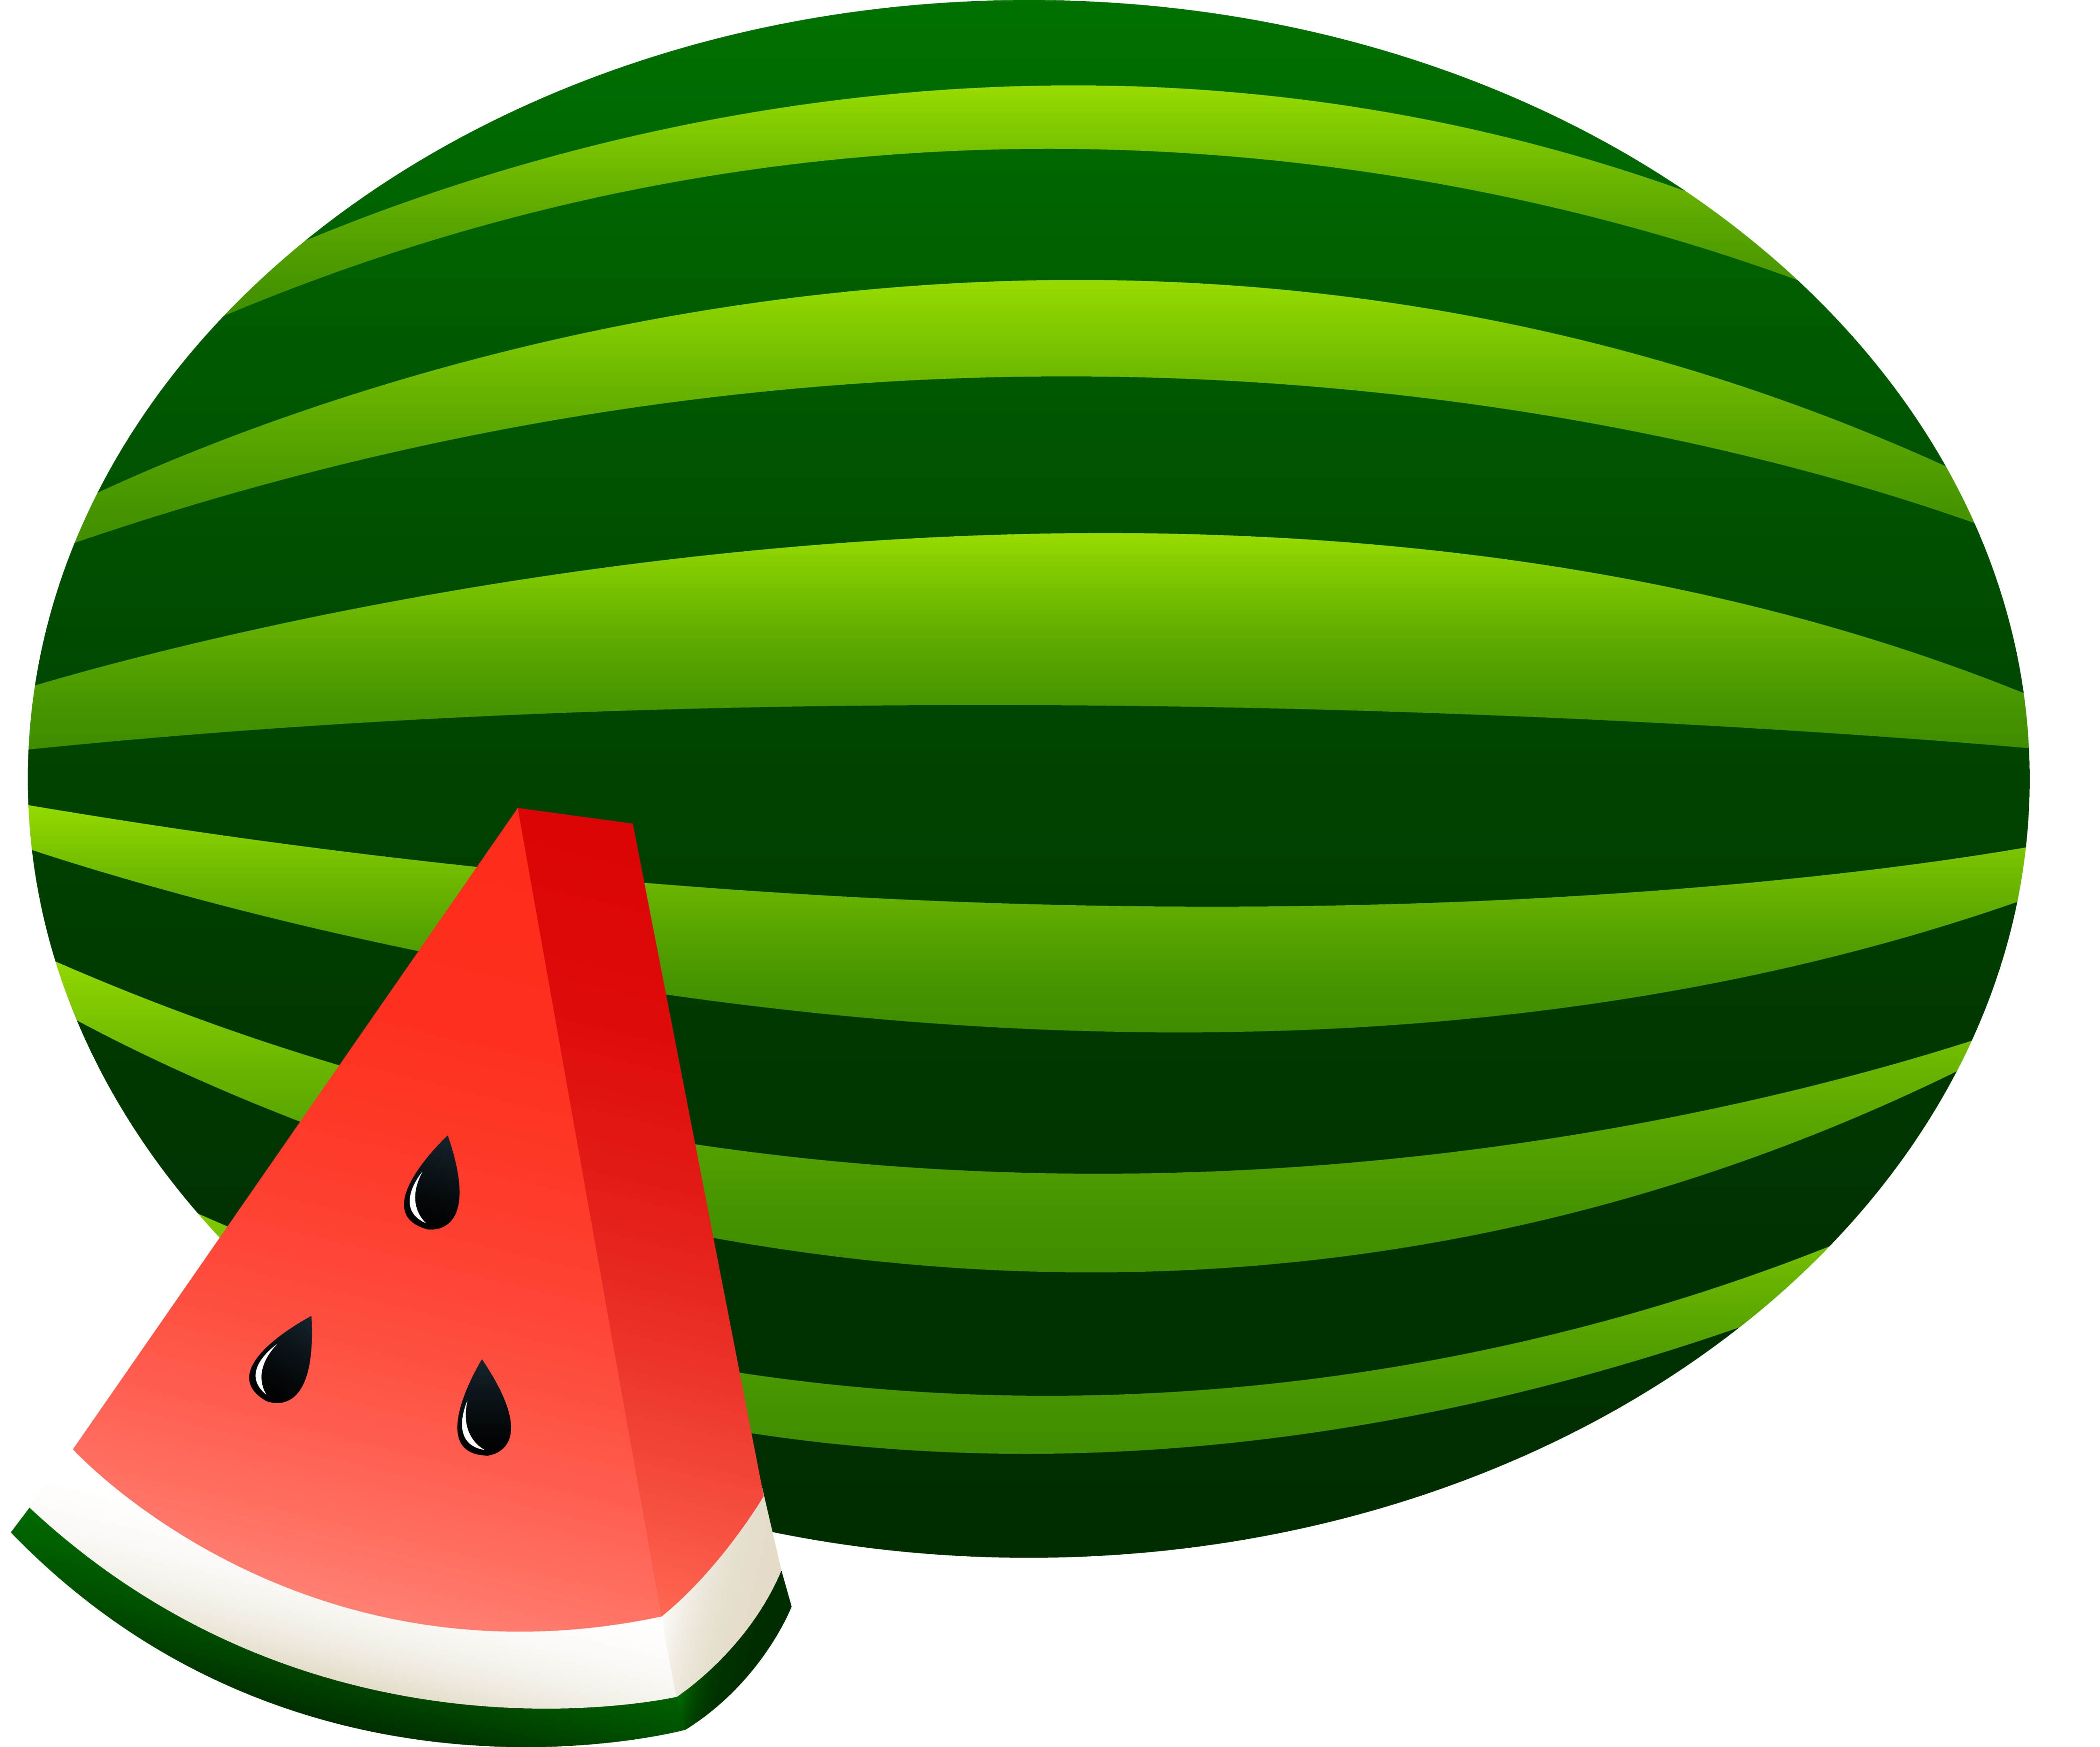 Watermelon clipart colour. Color drawing to print